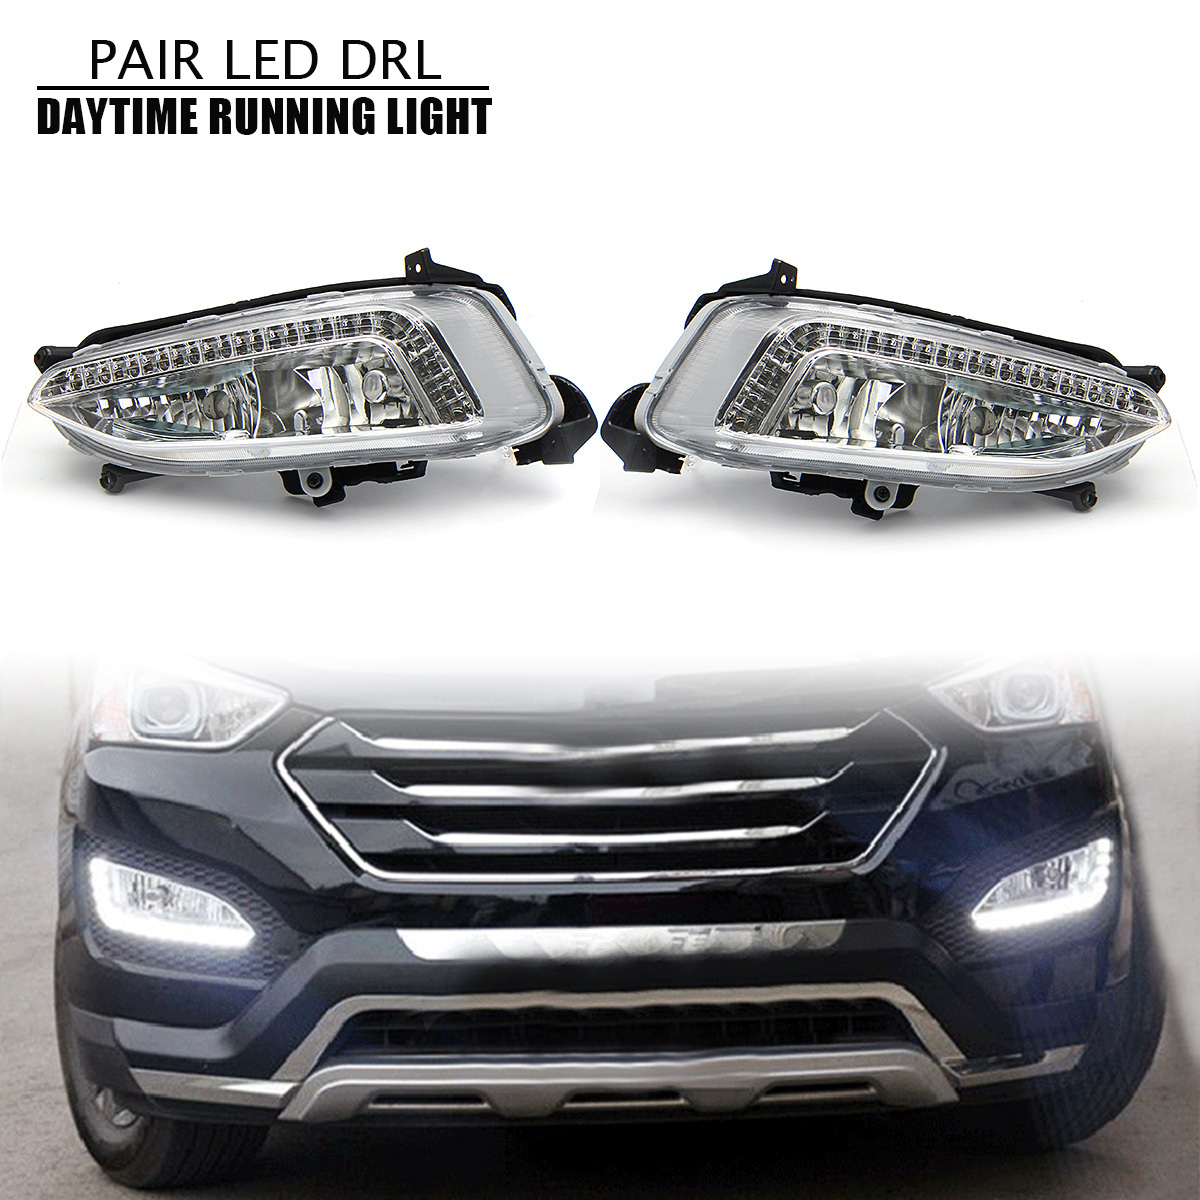 1 Pair 12V Automotive LED Lamp Car Fog Light Assembly White Daytime Running Light Waterproof for hyundai IX45 Santa Fe 1wx5 70 90lm 6000 6700k white 5 led car daytime running light black dc 12v pair